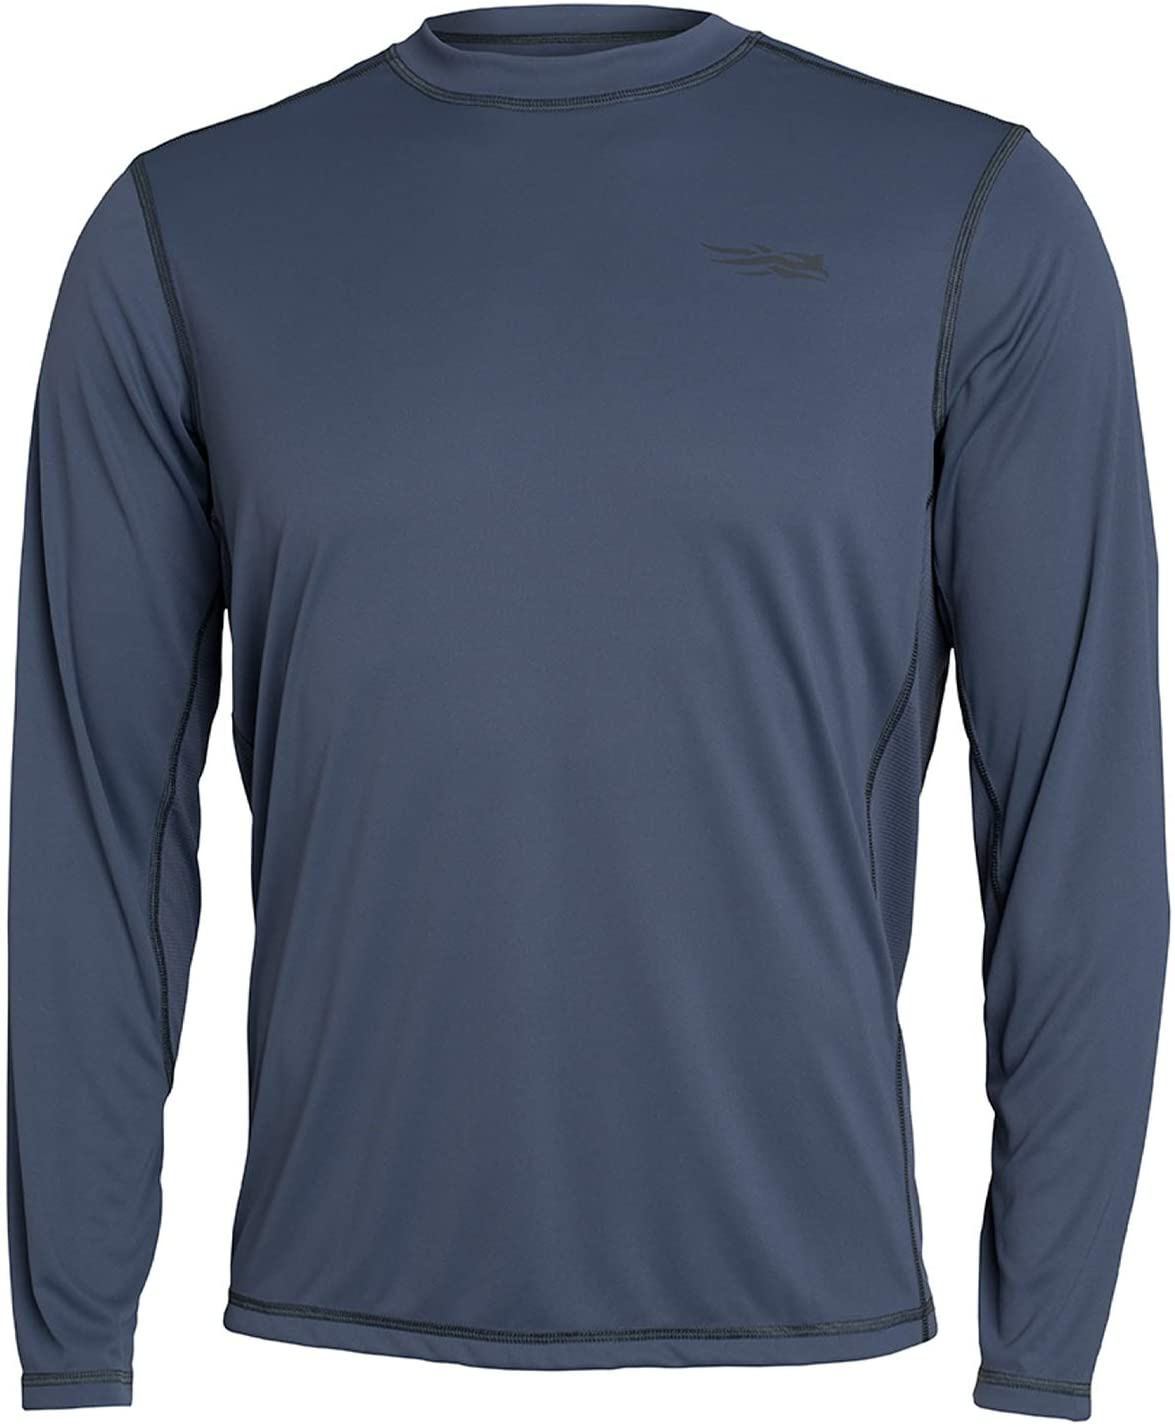 SITKA Redline Performance Shirt Long Sleeve